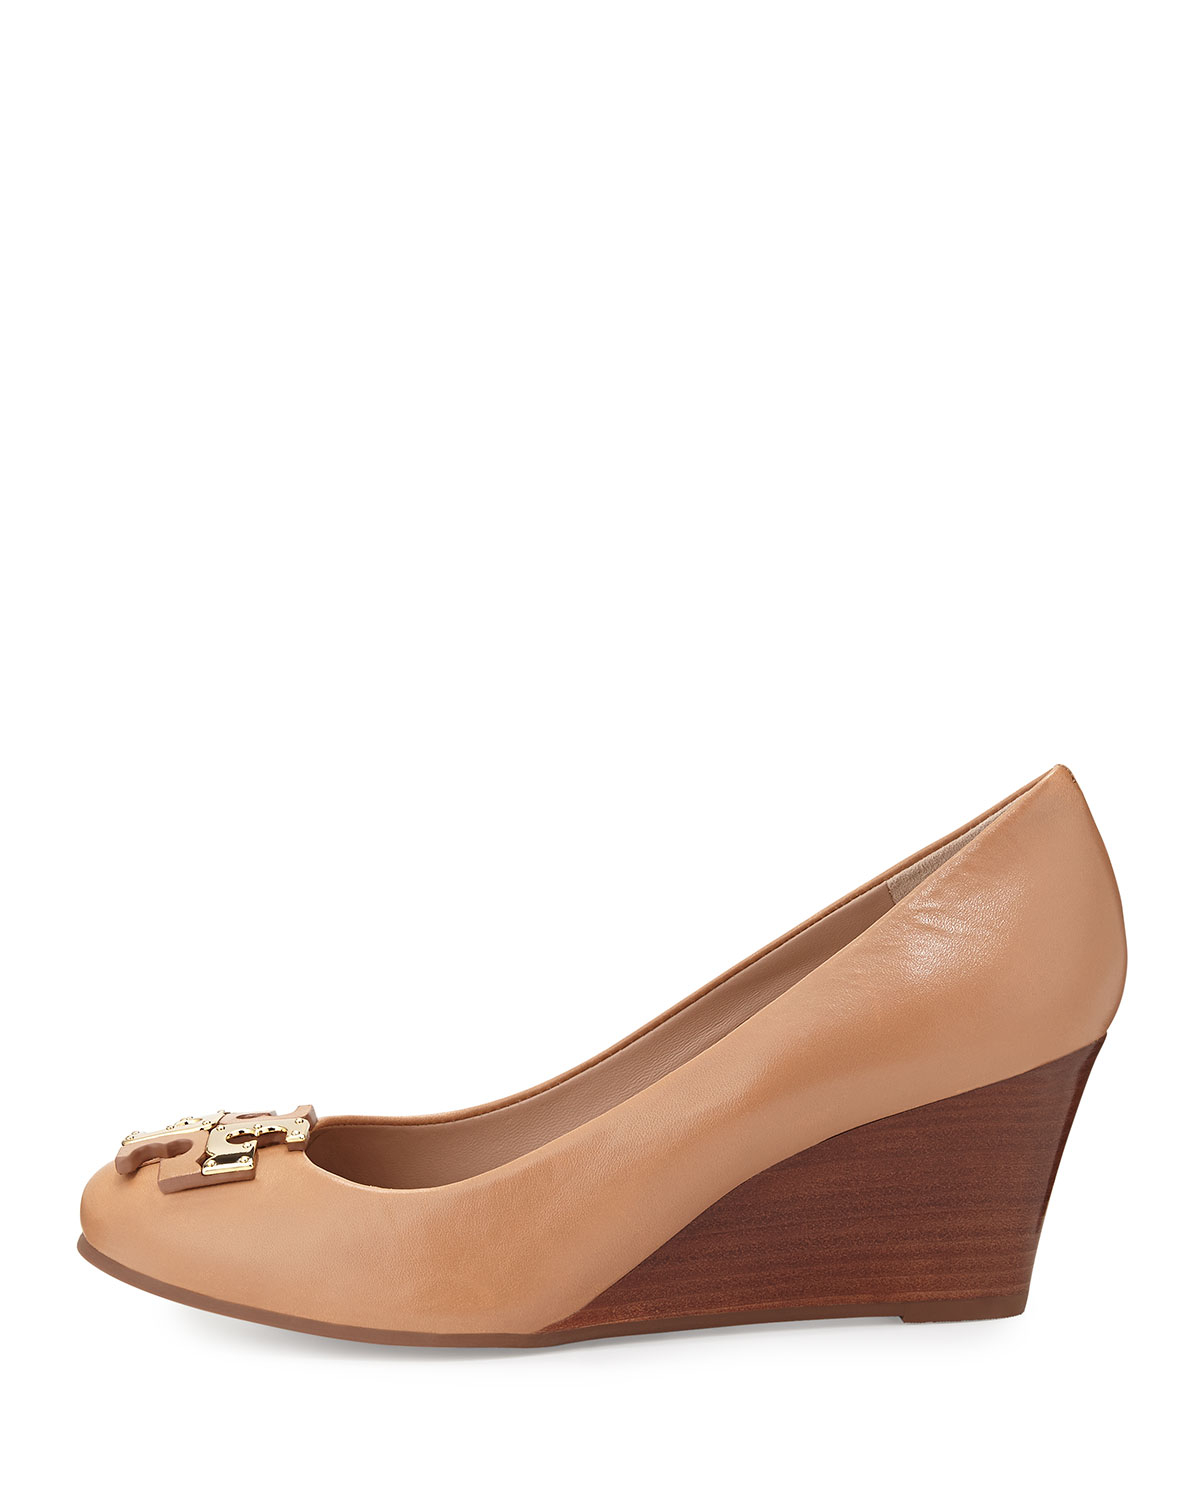 660479d30 Tory Burch Lowell New Logo Wedge Pump in Brown - Lyst